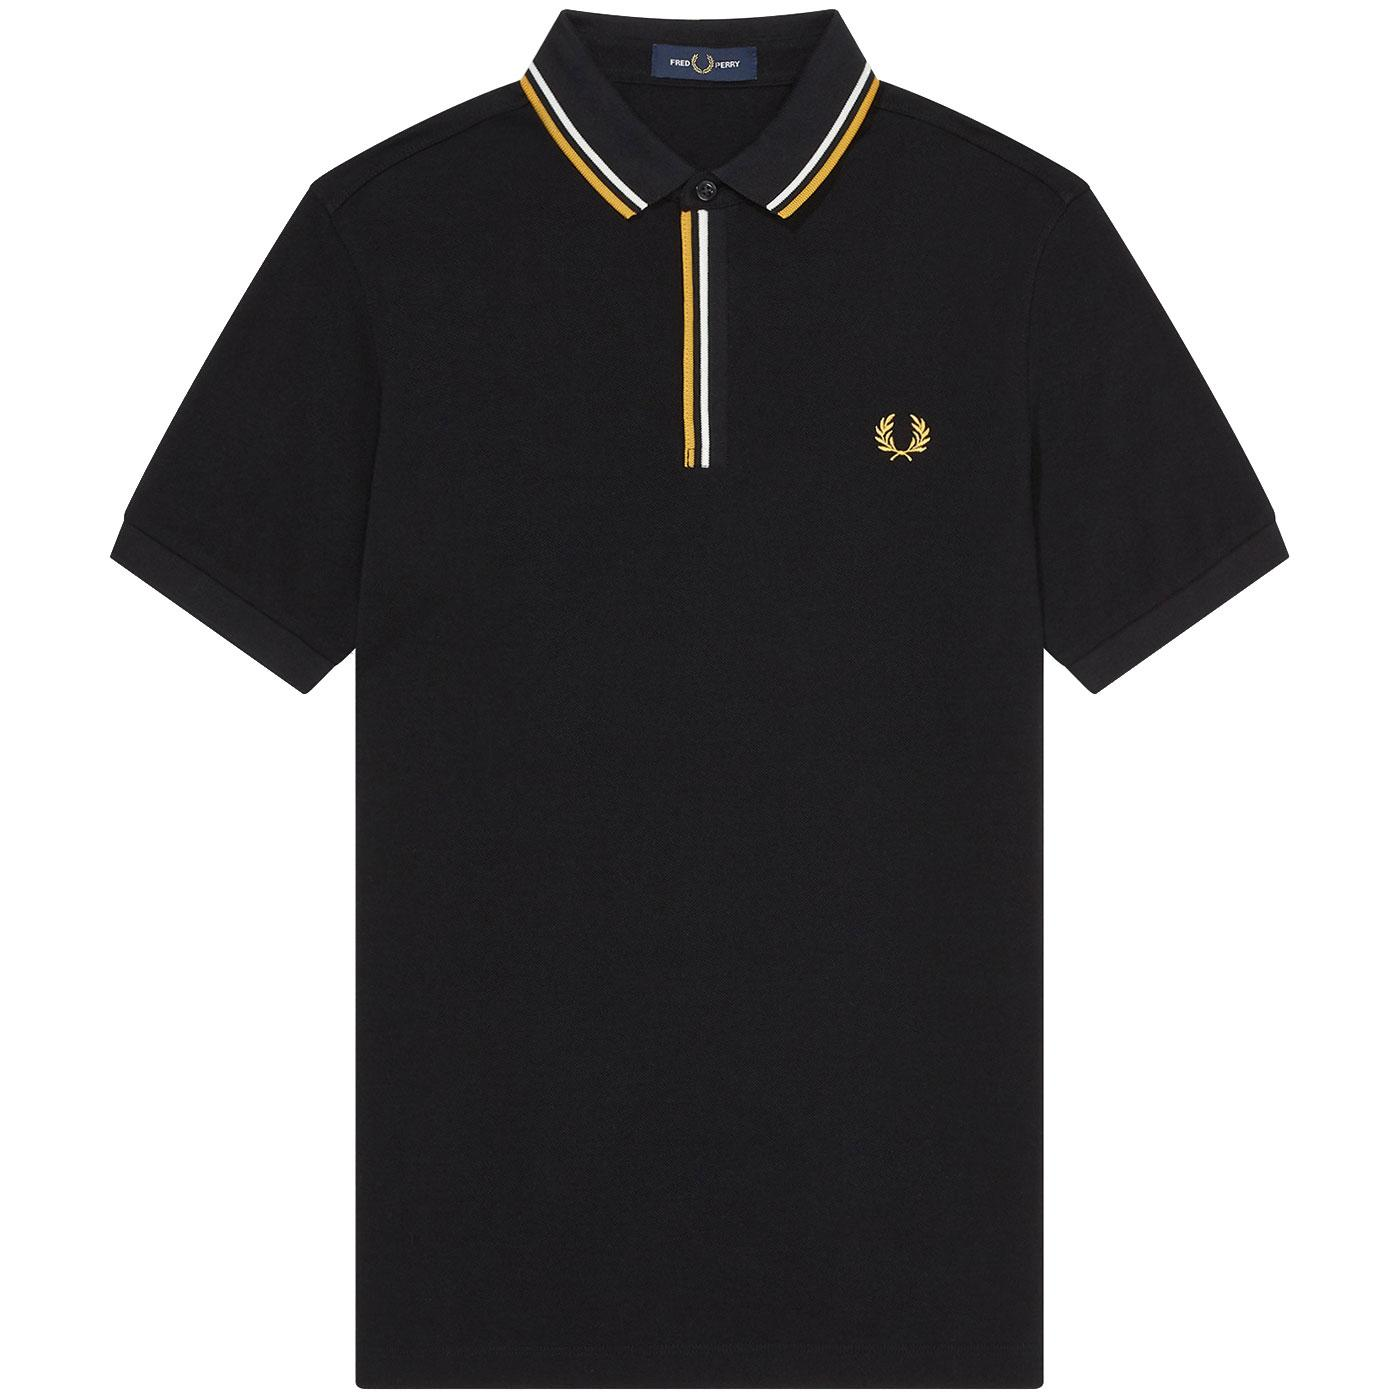 FRED PERRY Retro Mod Tipped Placket Mod Polo Shirt